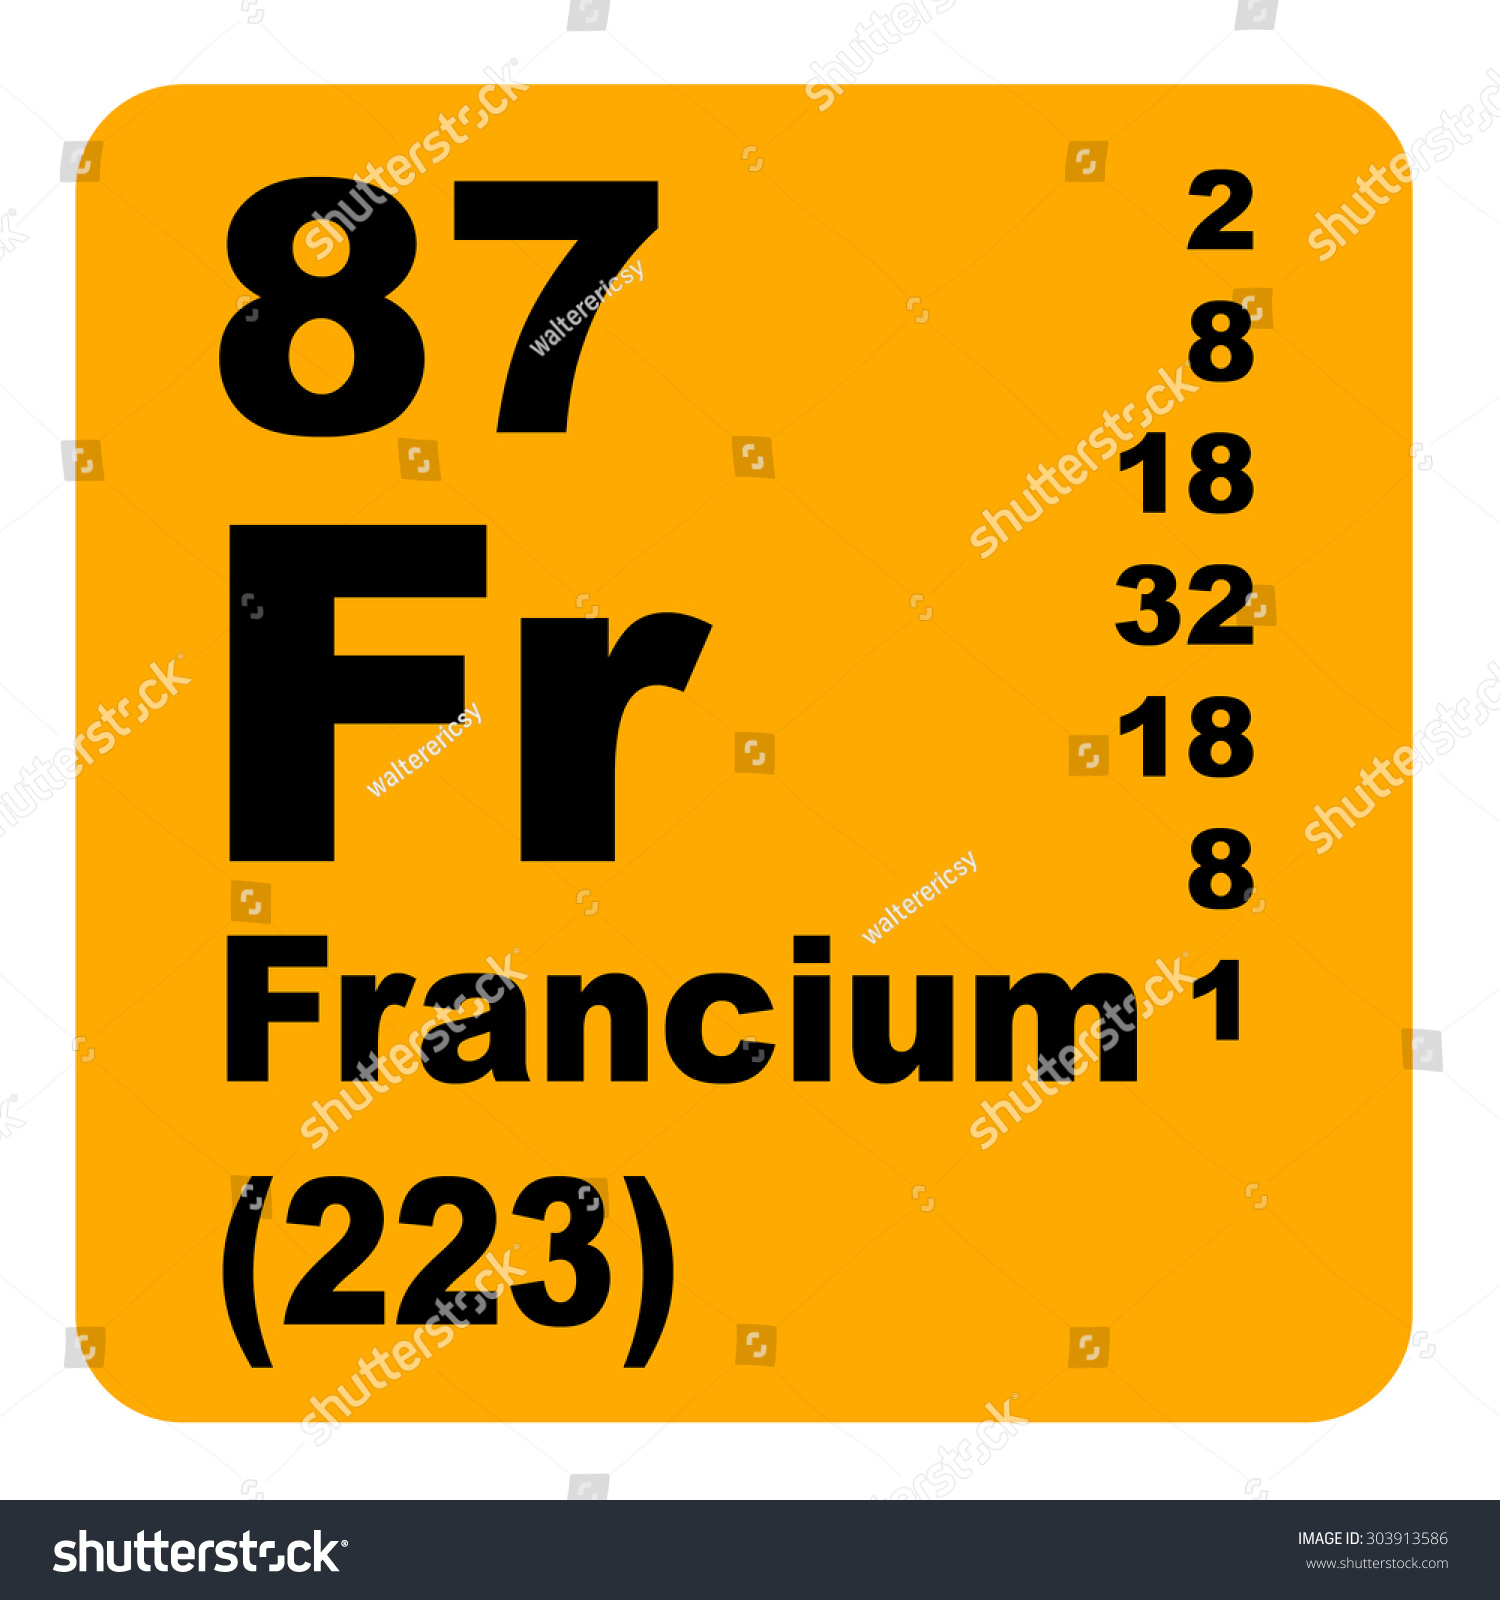 Carbon dioxide periodic table symbol gallery periodic table images francium on periodic table aviongoldcorp francium periodic table elements stock ilration 303913586 gamestrikefo gallery gamestrikefo Choice Image